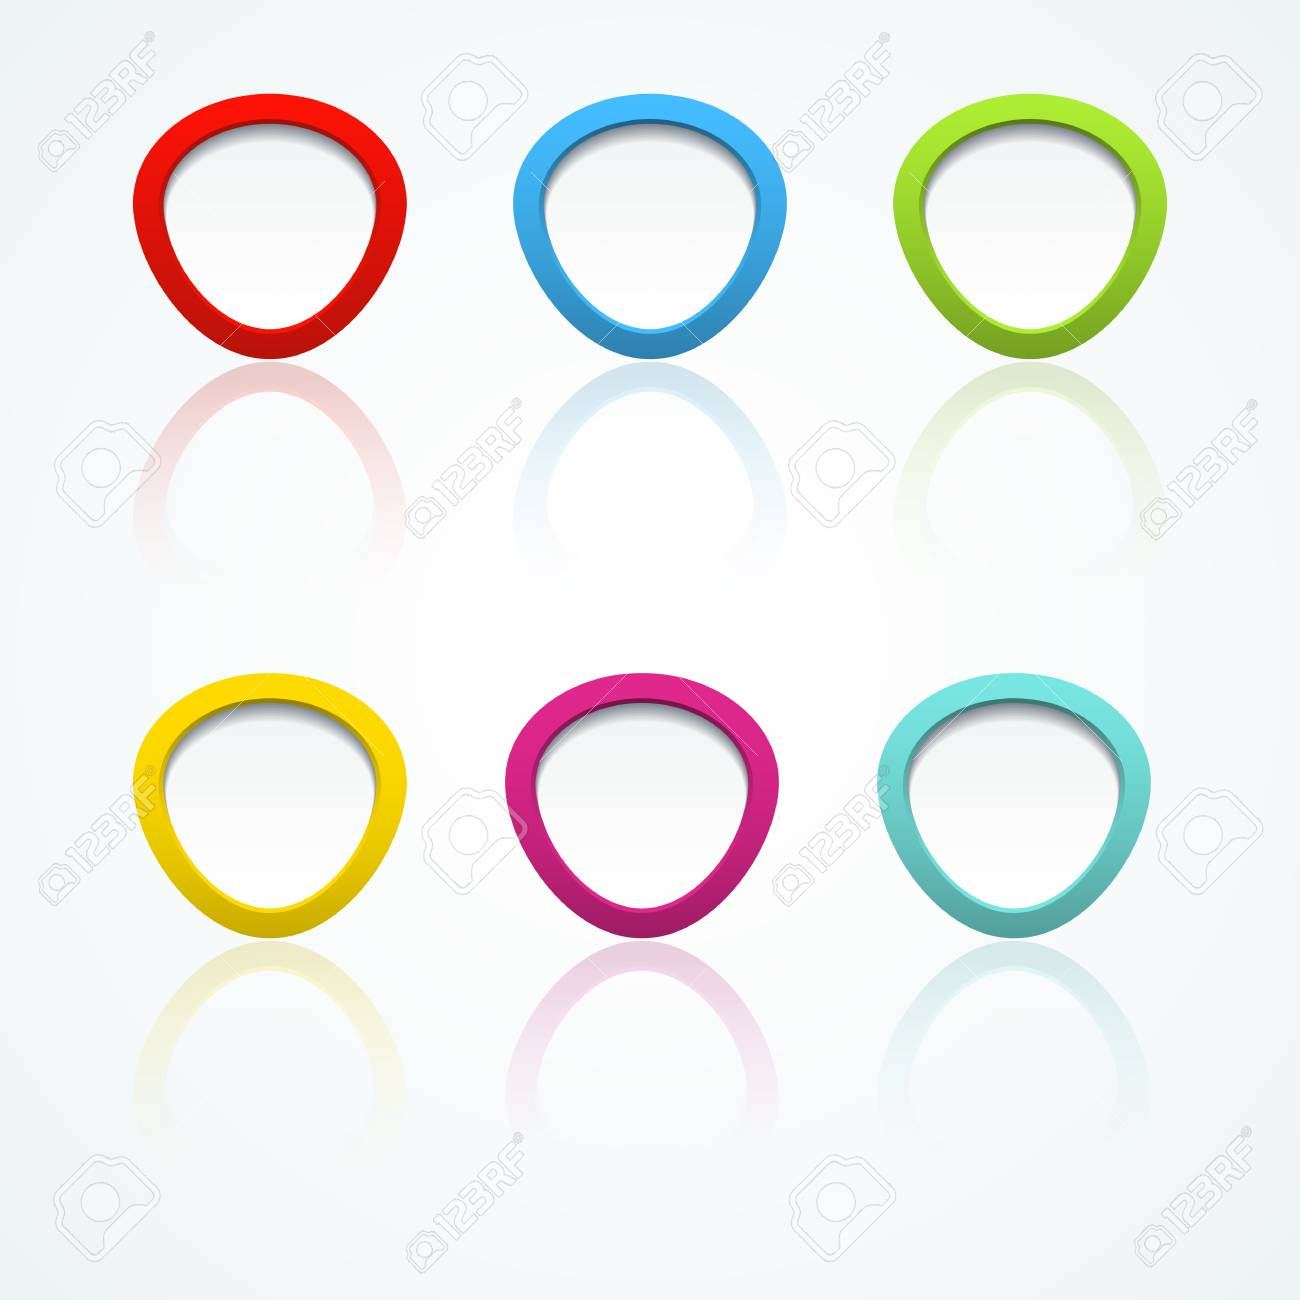 Set of colorful 3d buttons  Vector illustration Stock Vector - 18354046